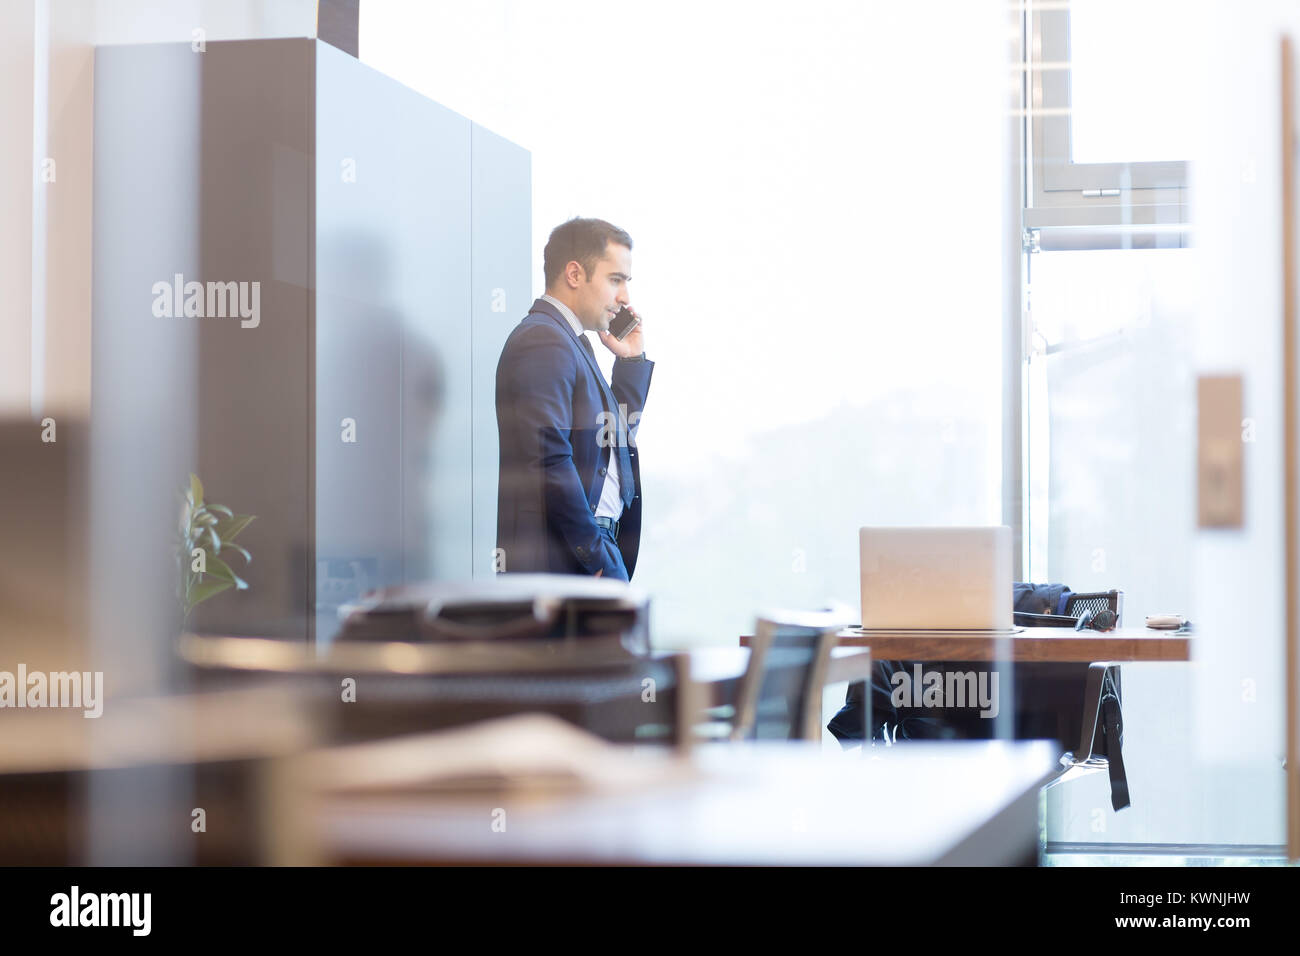 Businessman talking on a mobile phone while looking through window. - Stock Image